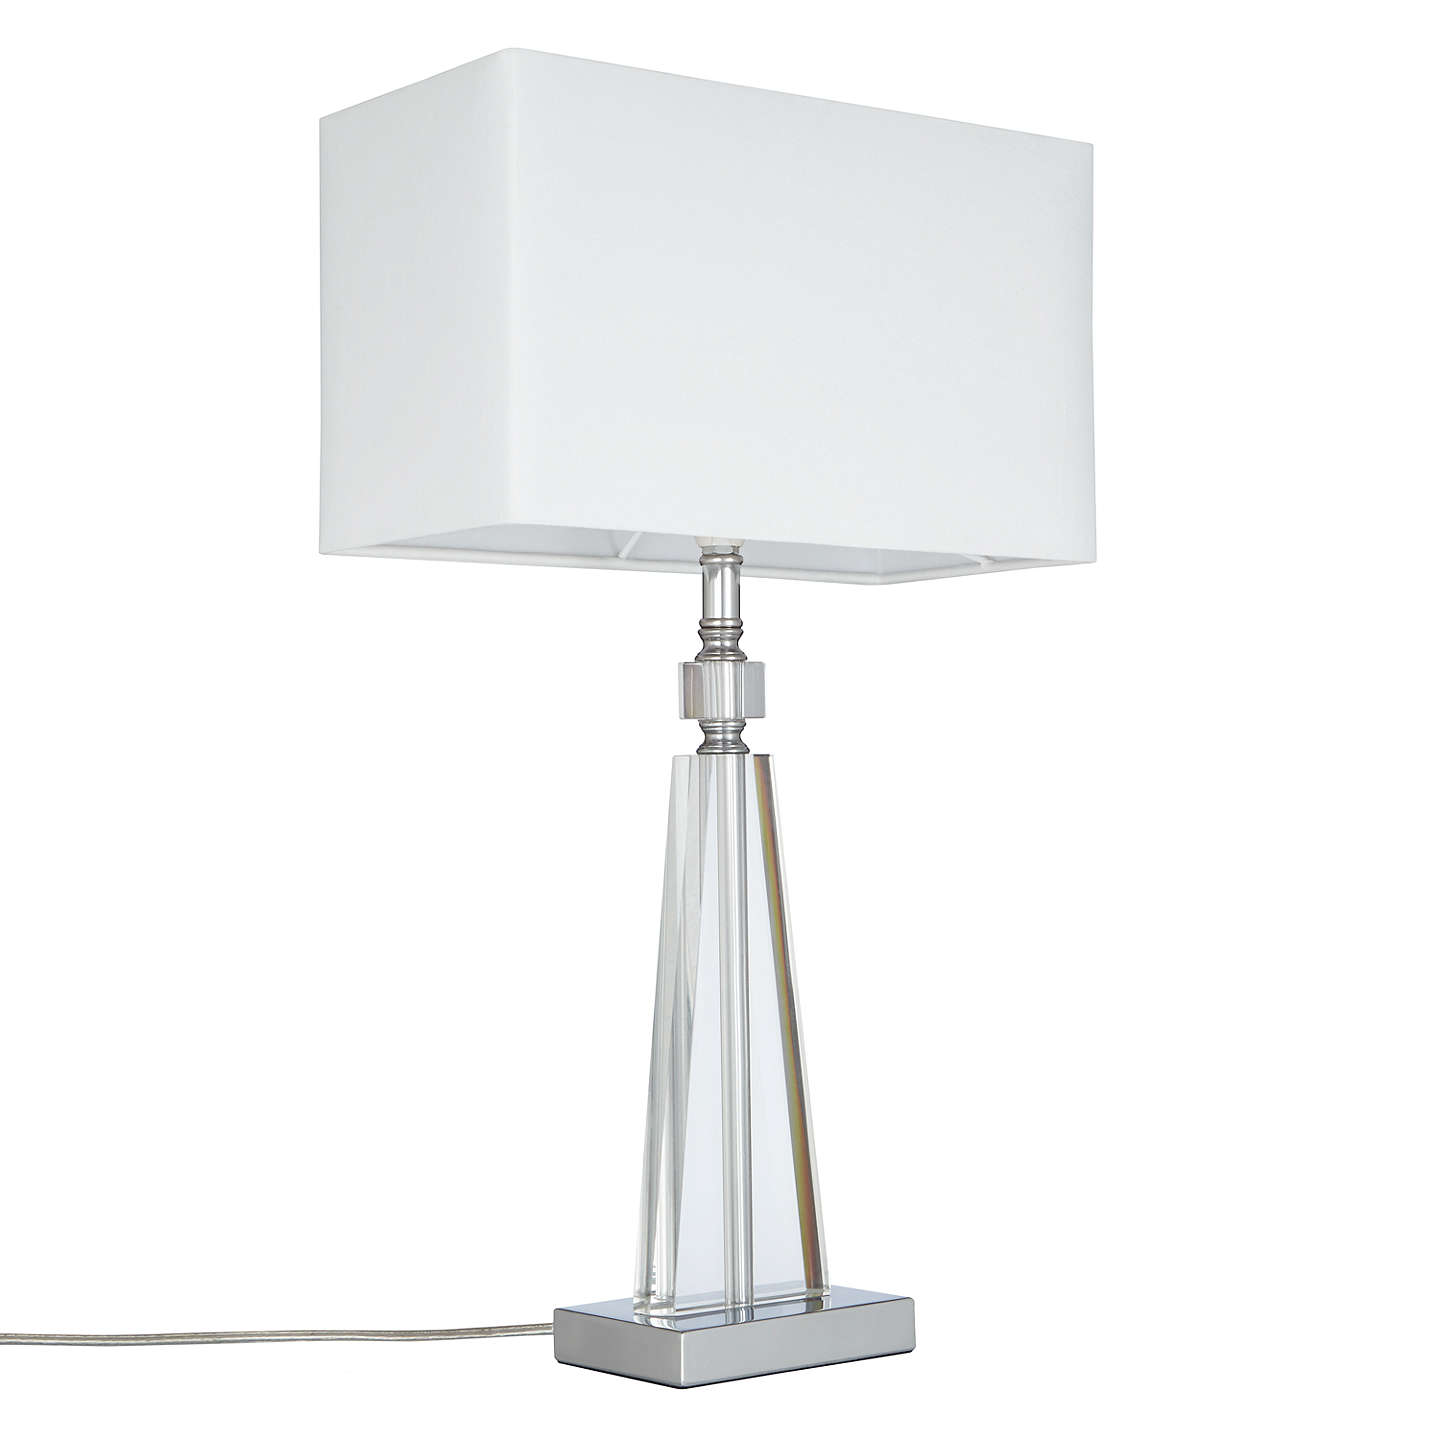 John lewis trisha triangle glass table lamp clear at john lewis buyjohn lewis trisha triangle glass table lamp clear online at johnlewis aloadofball Gallery